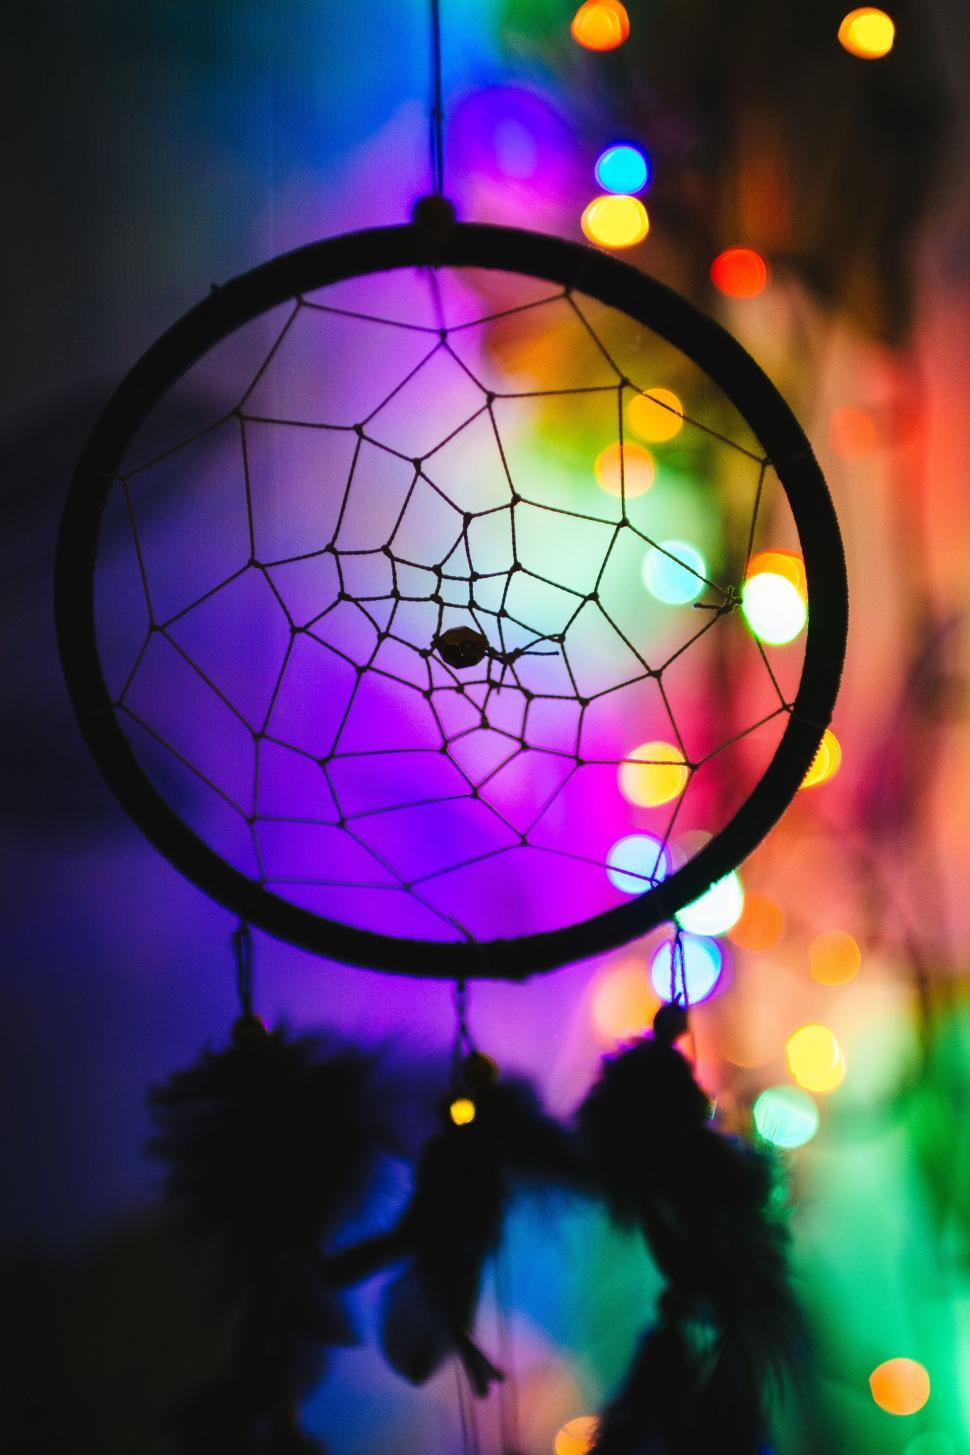 Download Free Stock HD Photo of Dreamcatcher Online